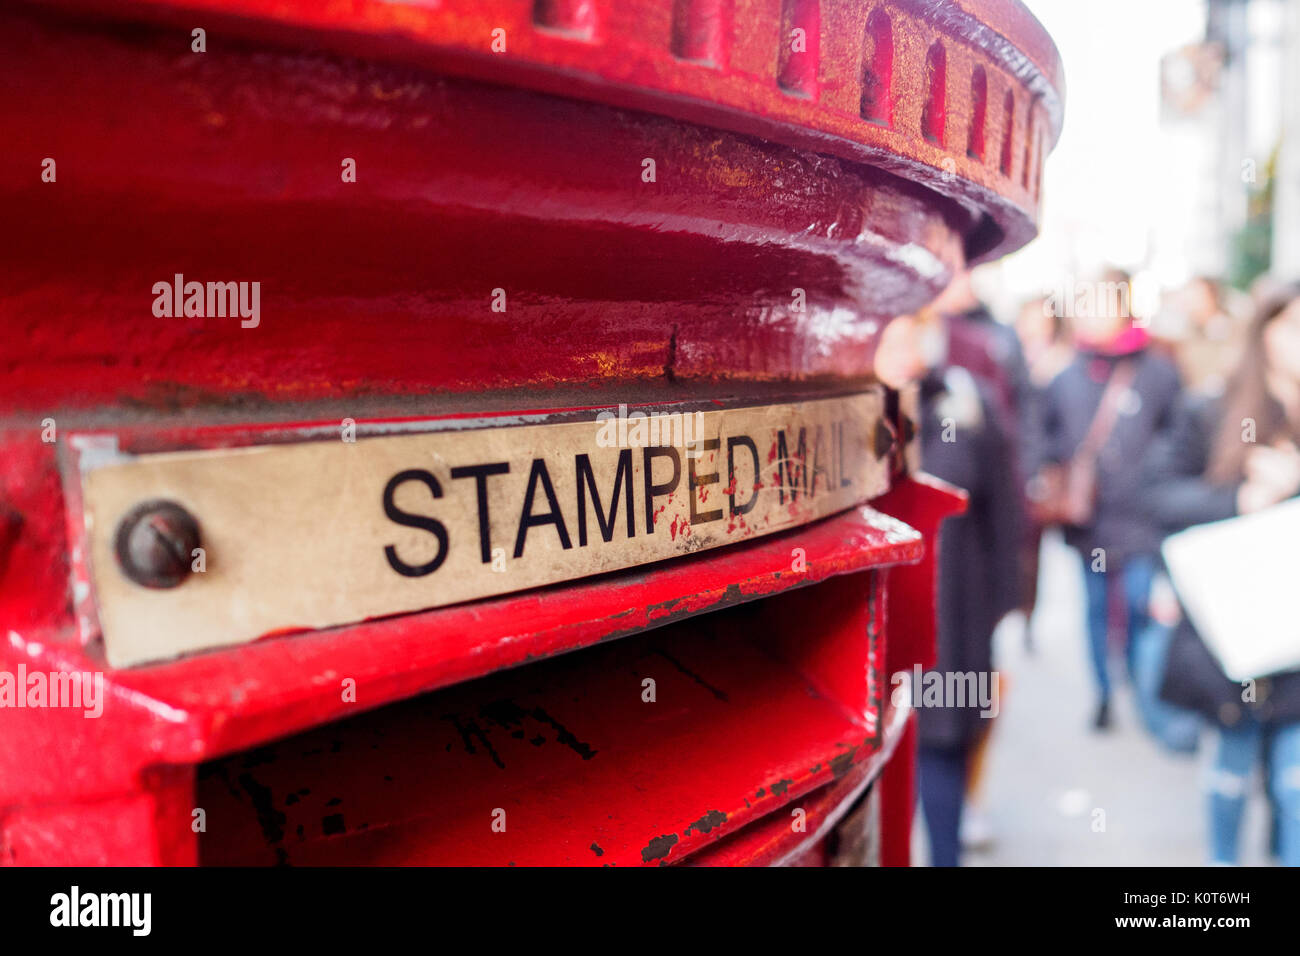 Red mail box in London. Landscape format. Stock Photo